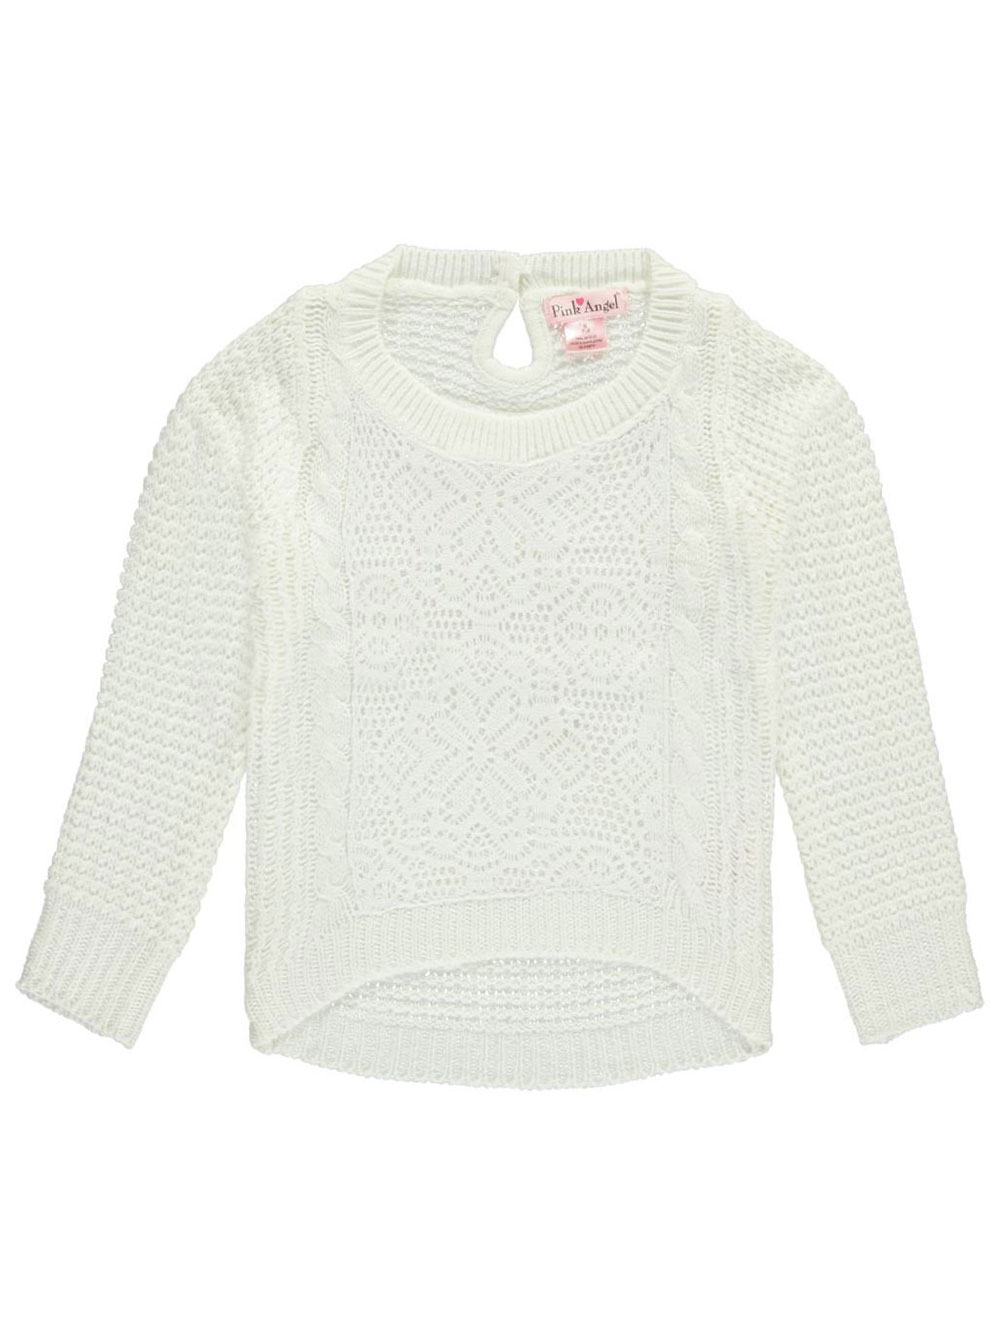 Image of Pink Angel Little Girls Lace Point Sweater Sizes 4  6X  ivory 5  6